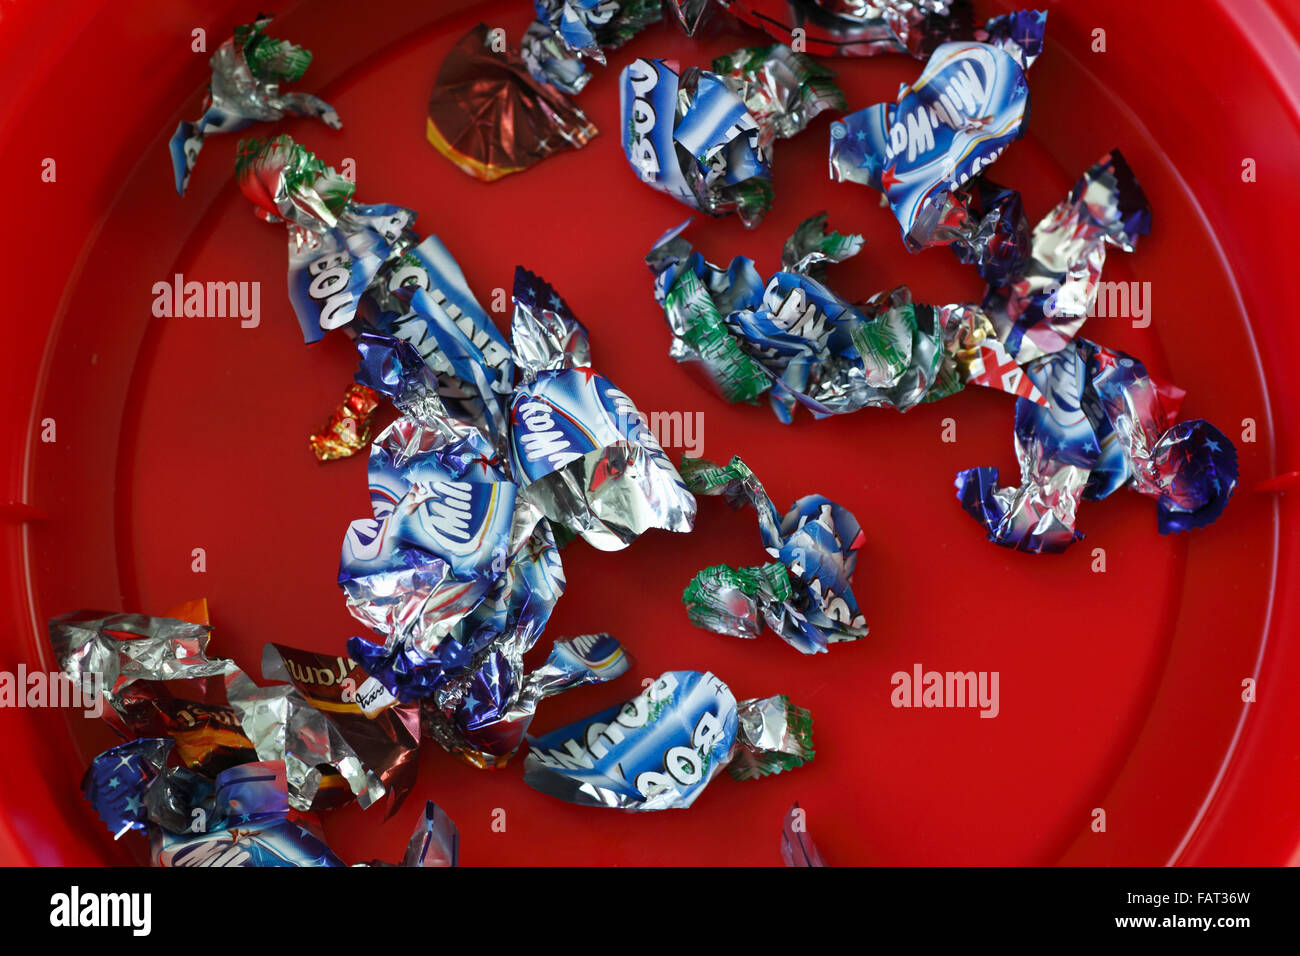 Wrappers left in the bottom of a tub of chocolate sweets. - Stock Image